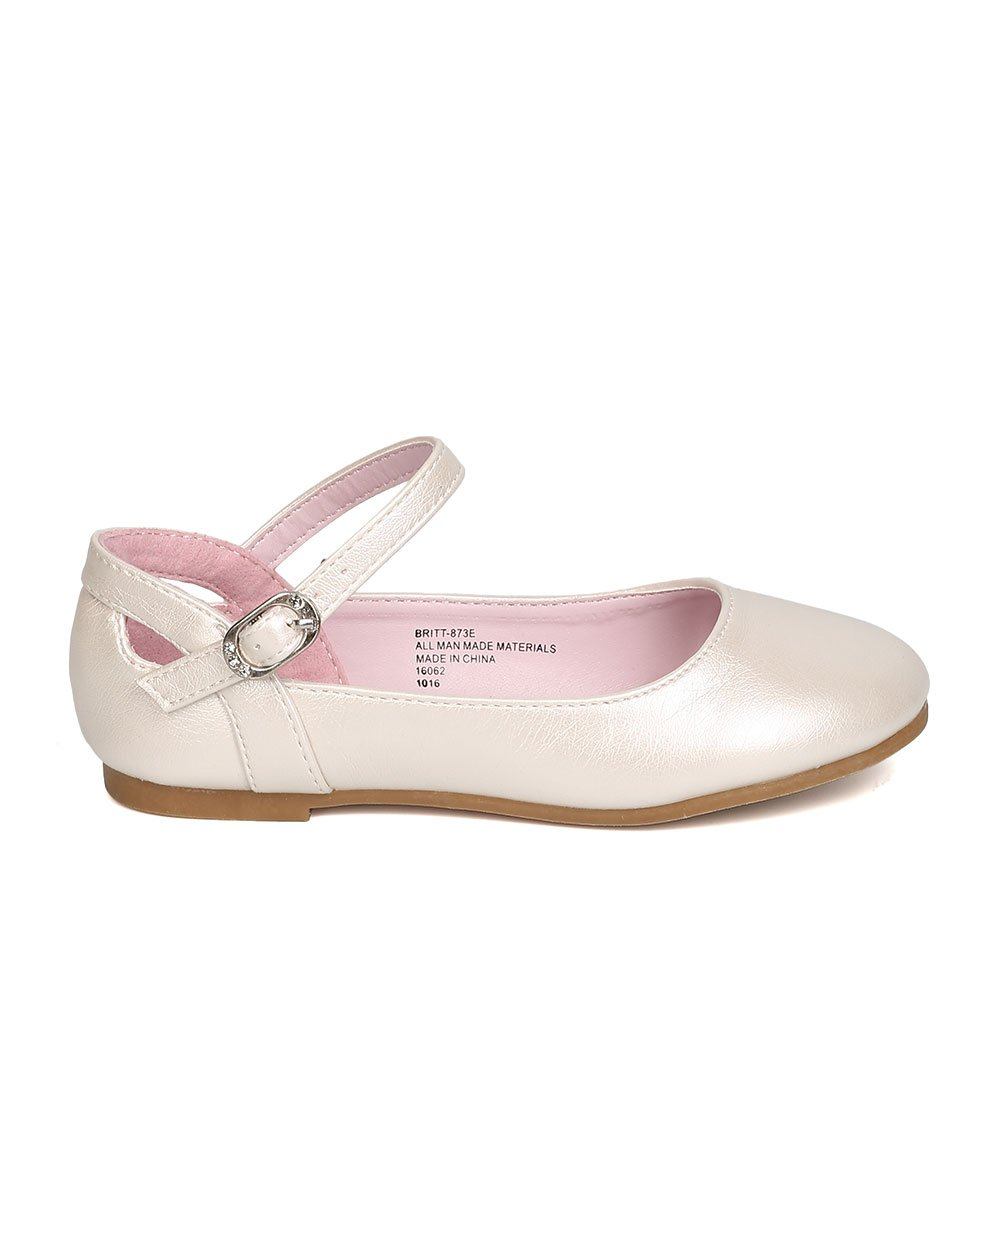 Girls Leatherette Ankle Strap Cut Out Ballet Flat GB42 - Ivory (Size: Little Kid 1) by Little Angel (Image #2)